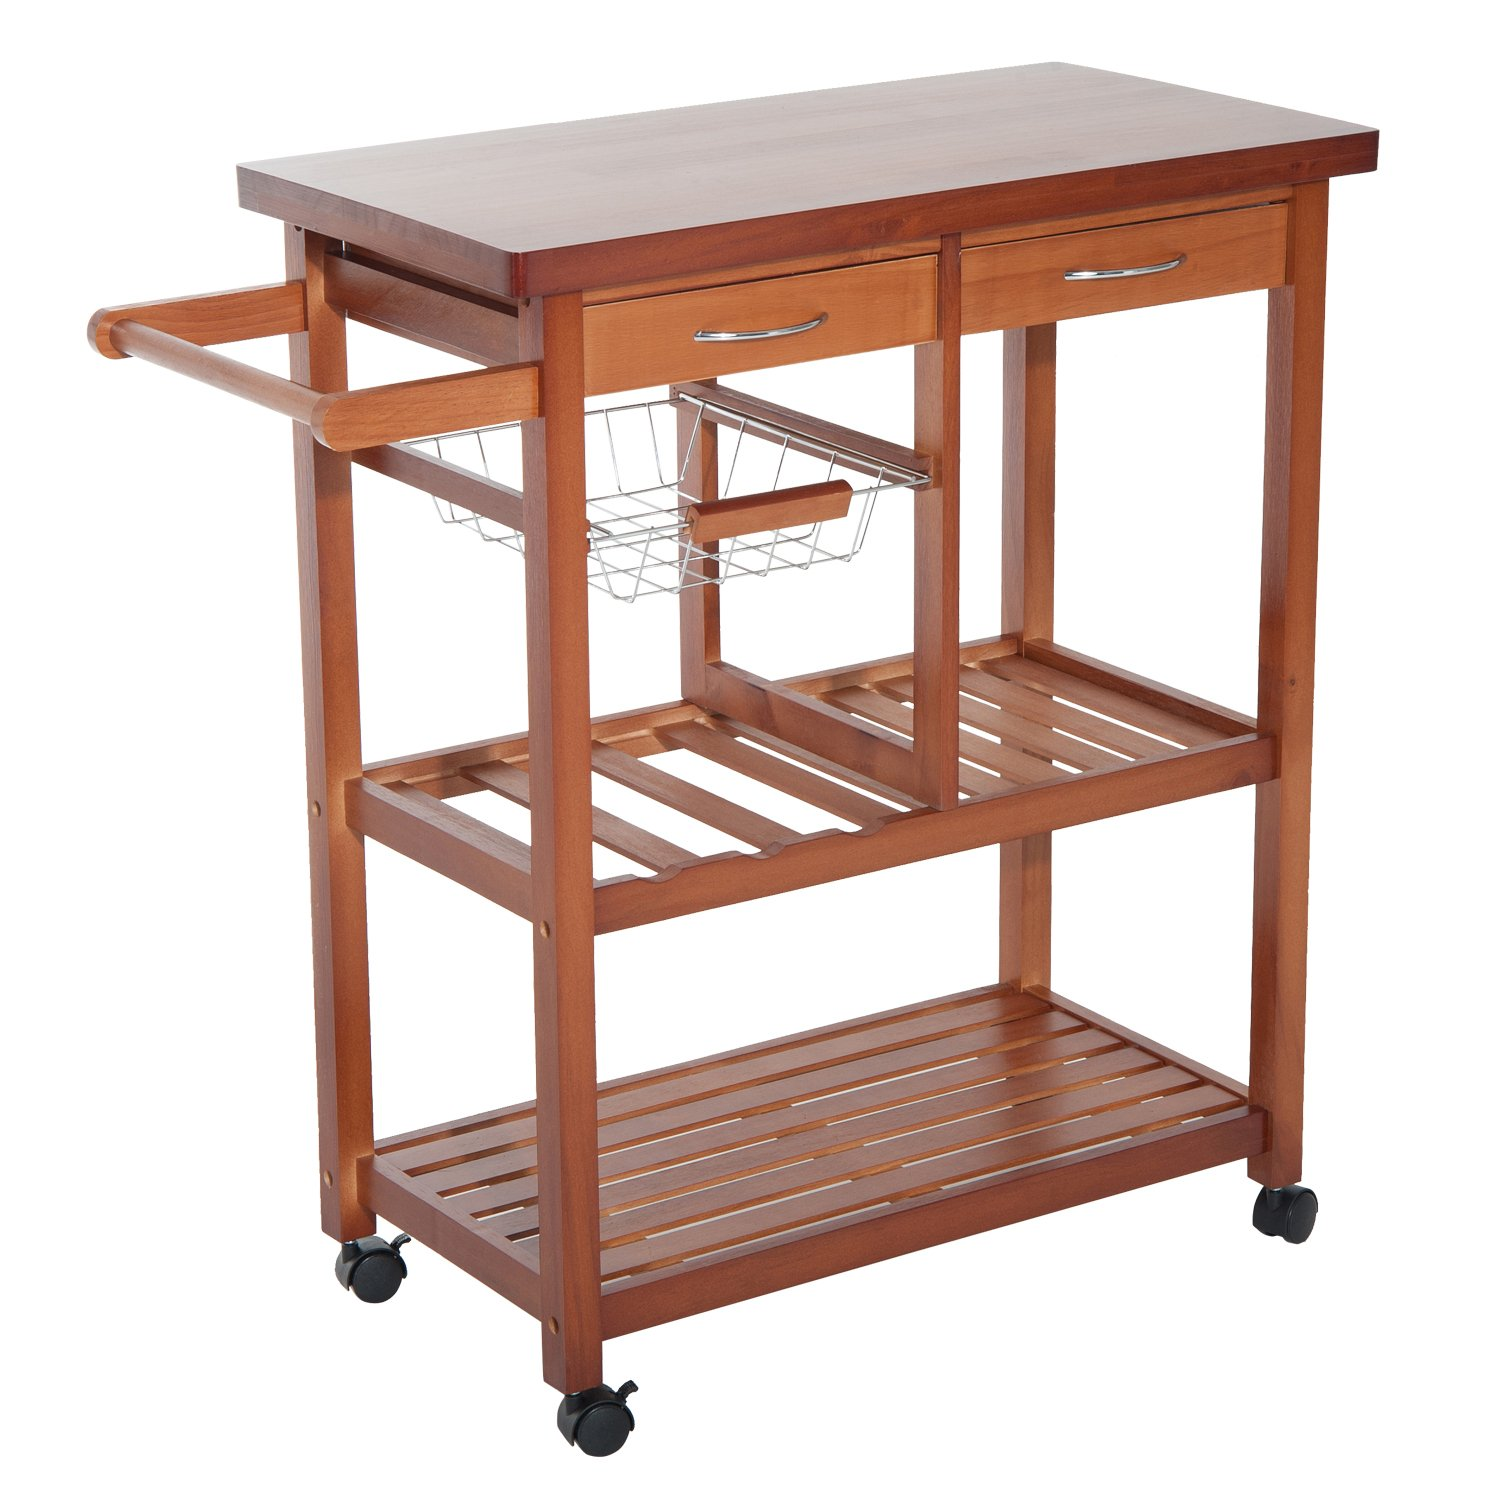 HomCom Wooden Rolling Storage Microwave Cart Kitchen Trolley with Drawers